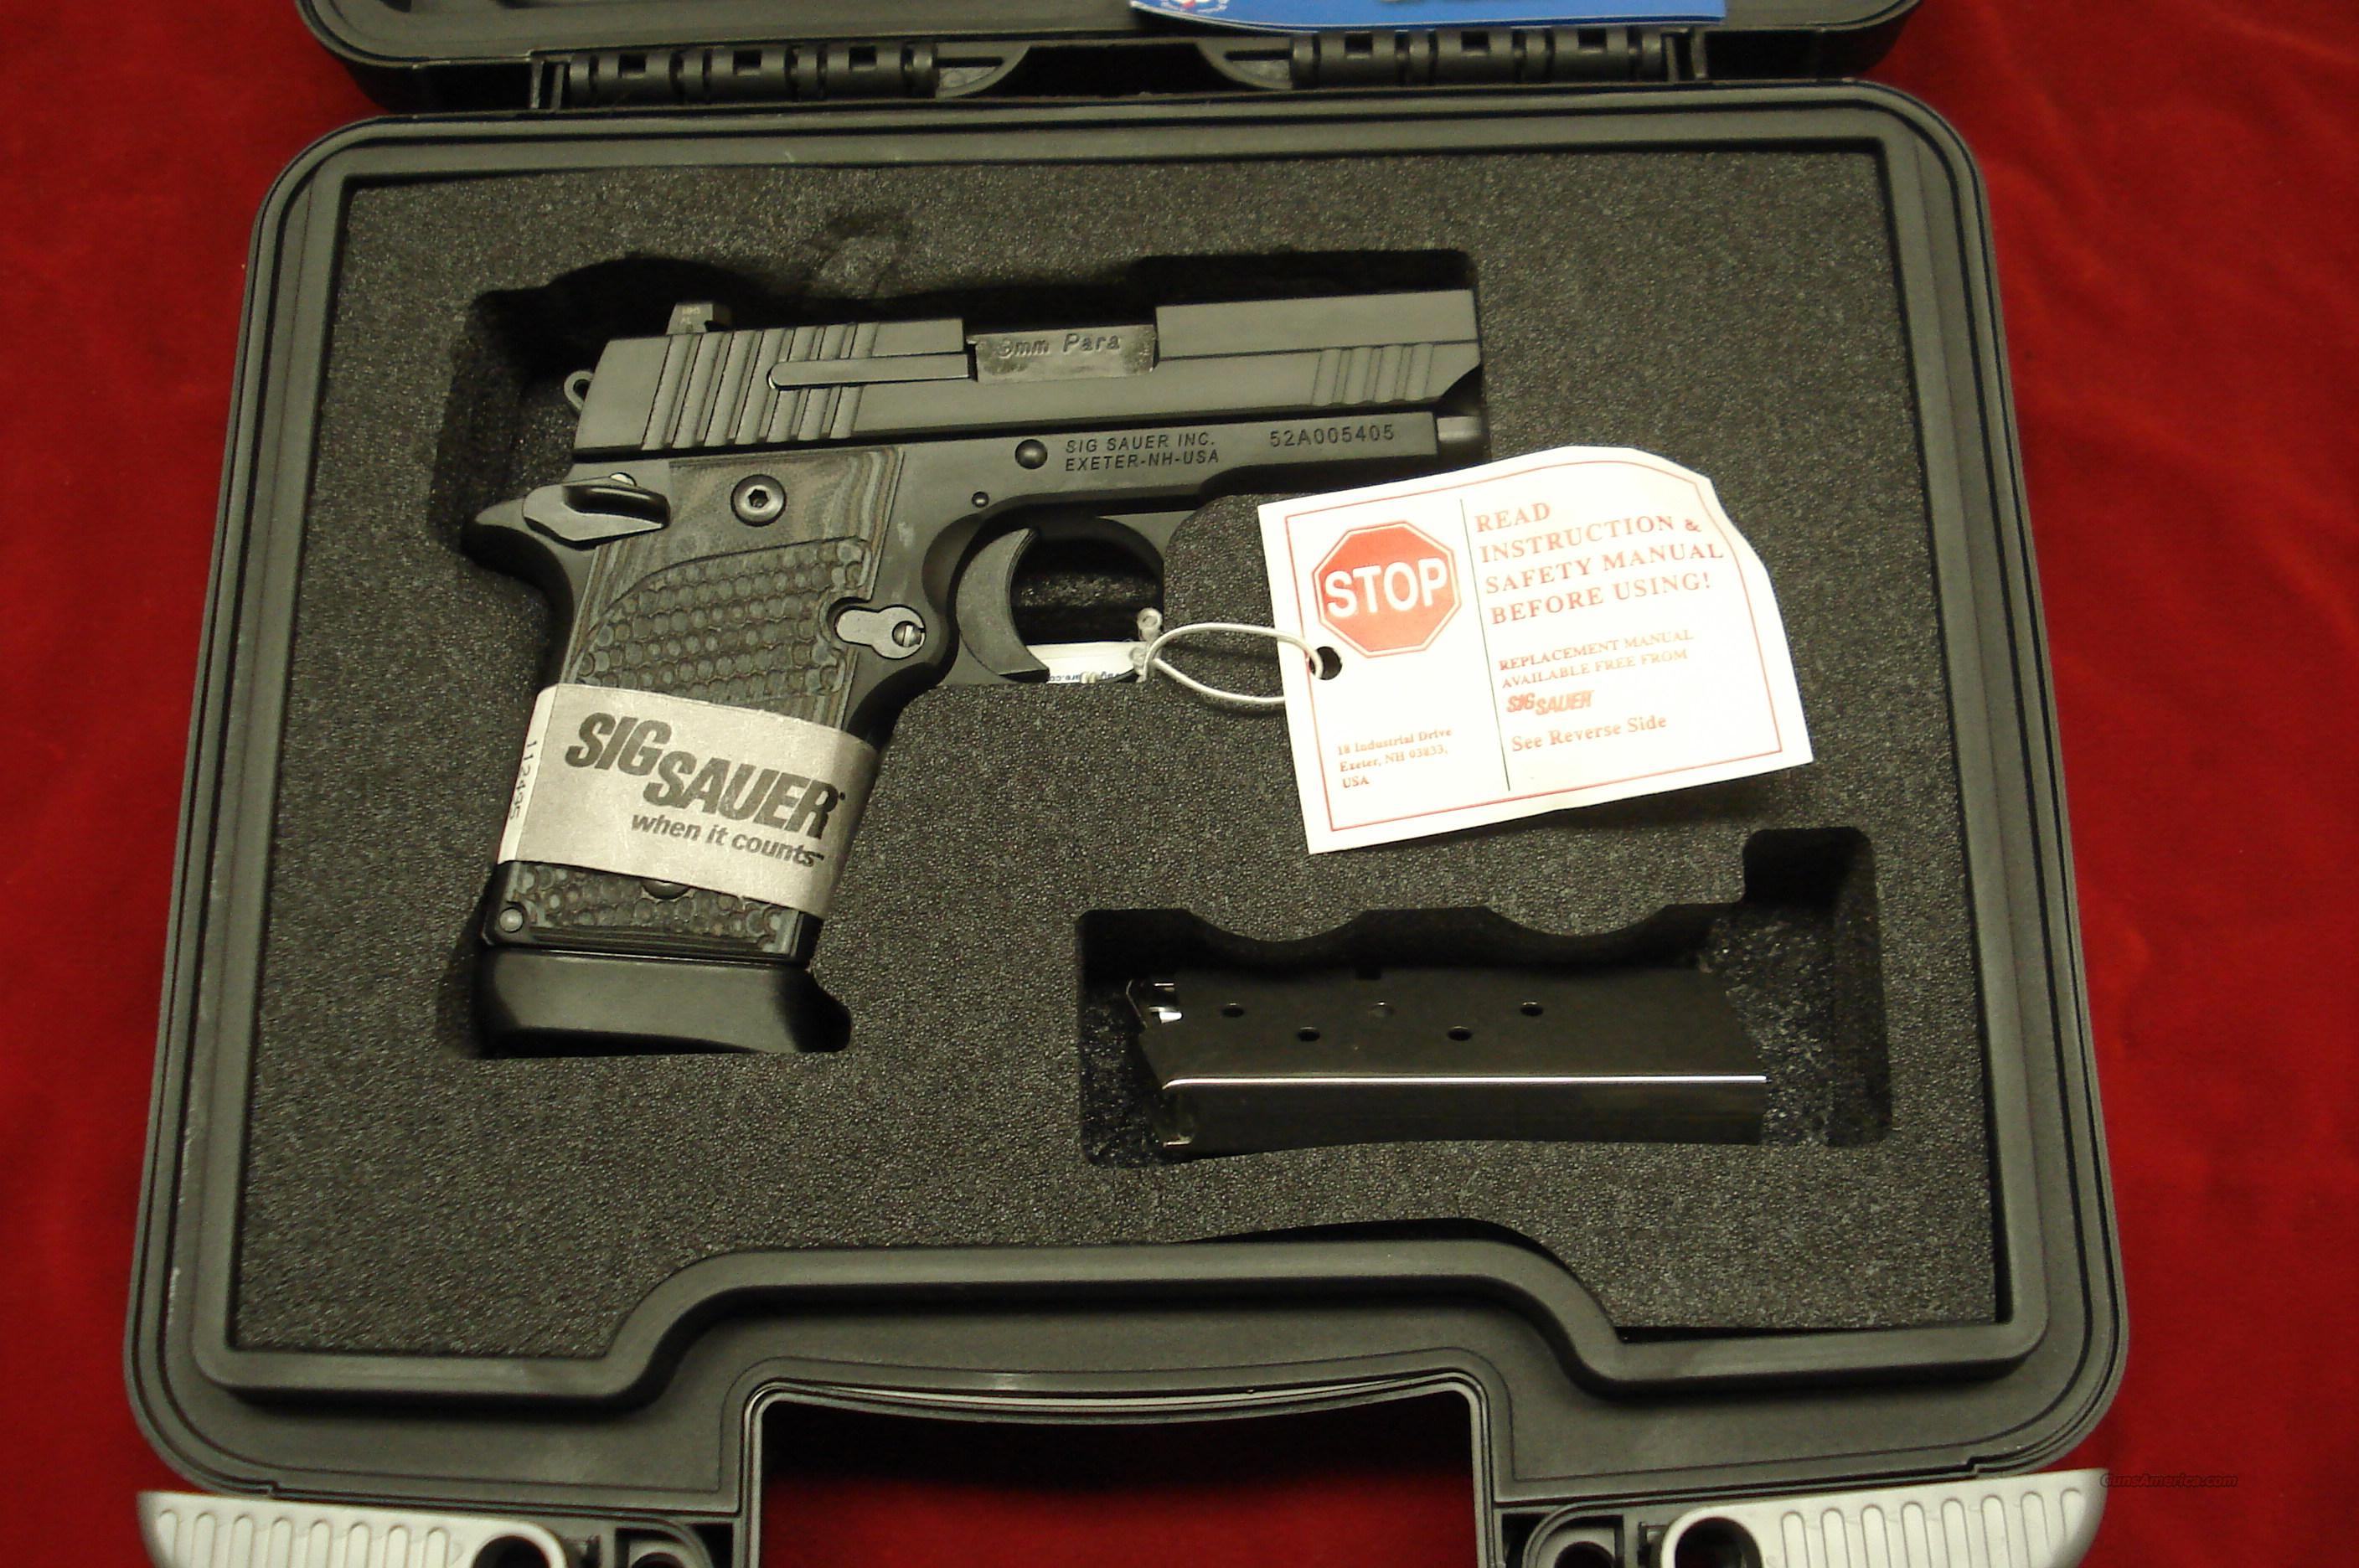 SIG SAUER 938 9MM W/NIGHT SIGHTS AND G-10 GRIPS NEW  Guns > Pistols > Sig - Sauer/Sigarms Pistols > Other